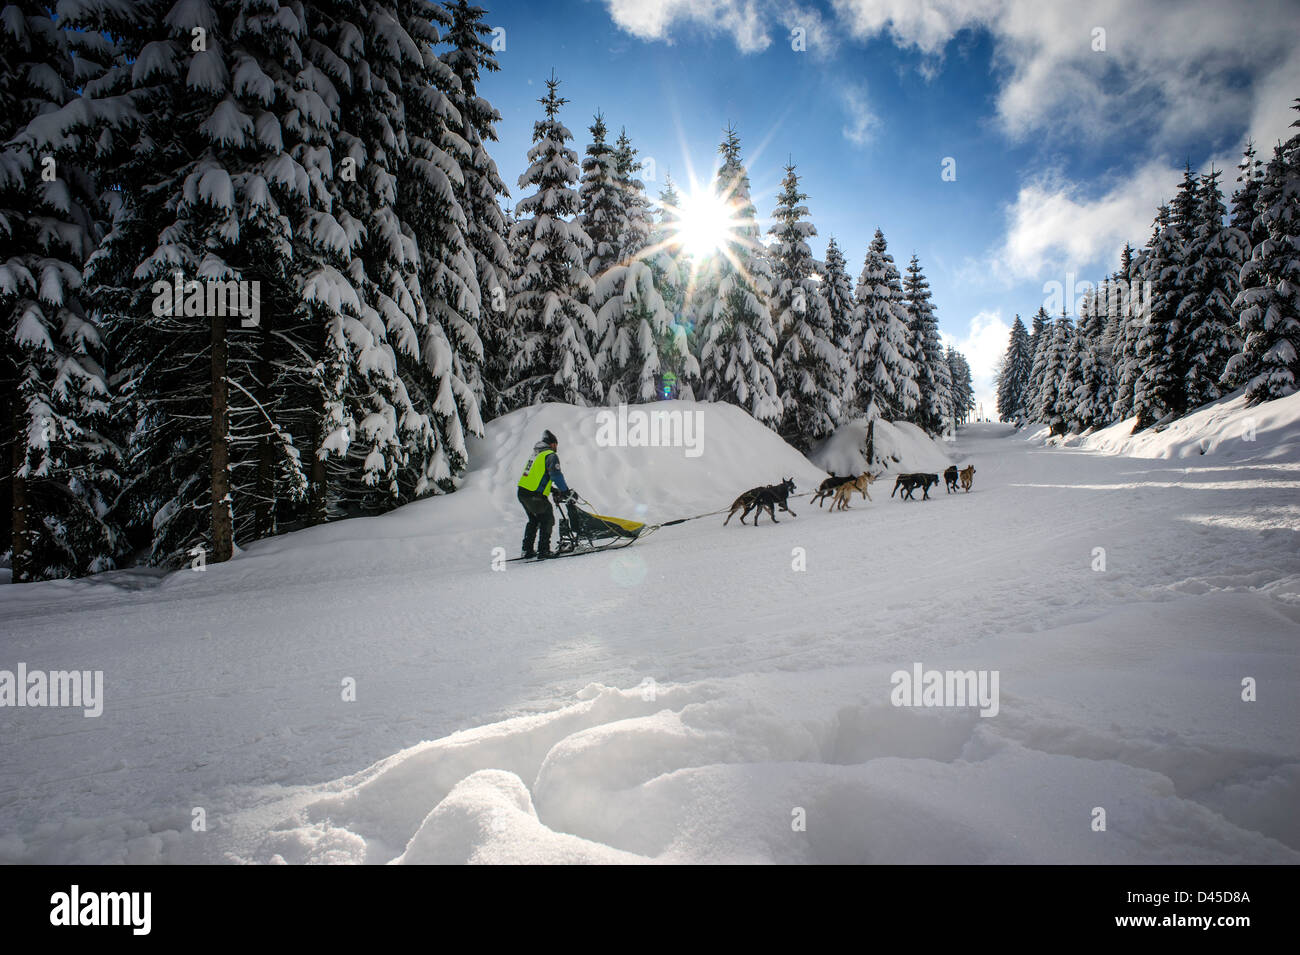 The 2013 Border Rush Sled dog competition takes part in the stunning scenery of the Izery mountains, Poland. - Stock Image